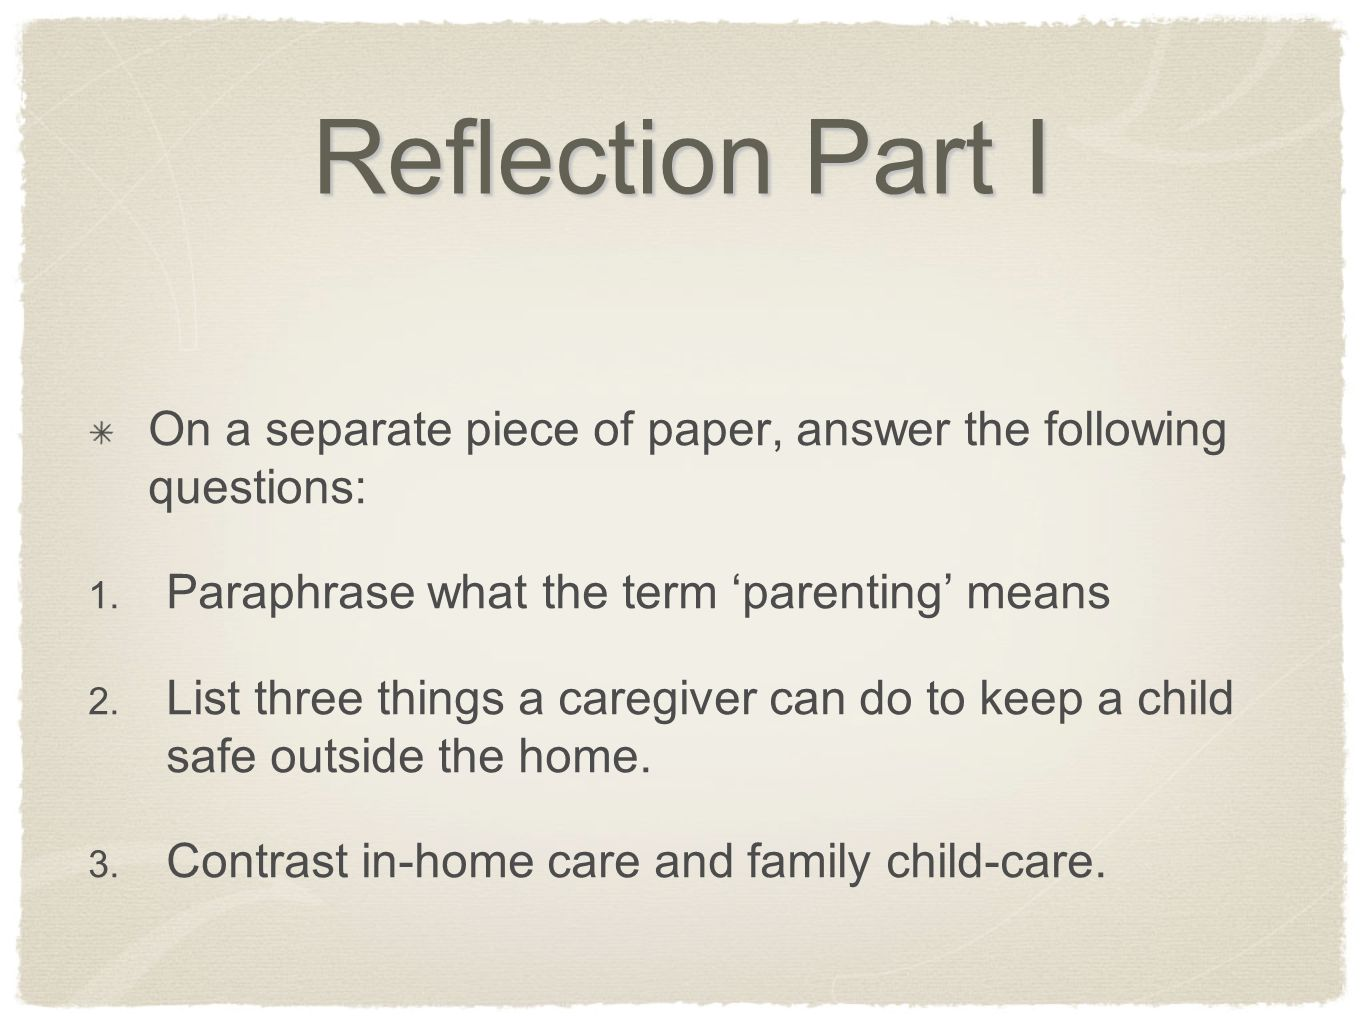 Reflection Part I On a separate piece of paper, answer the following questions: Paraphrase what the term 'parenting' means.